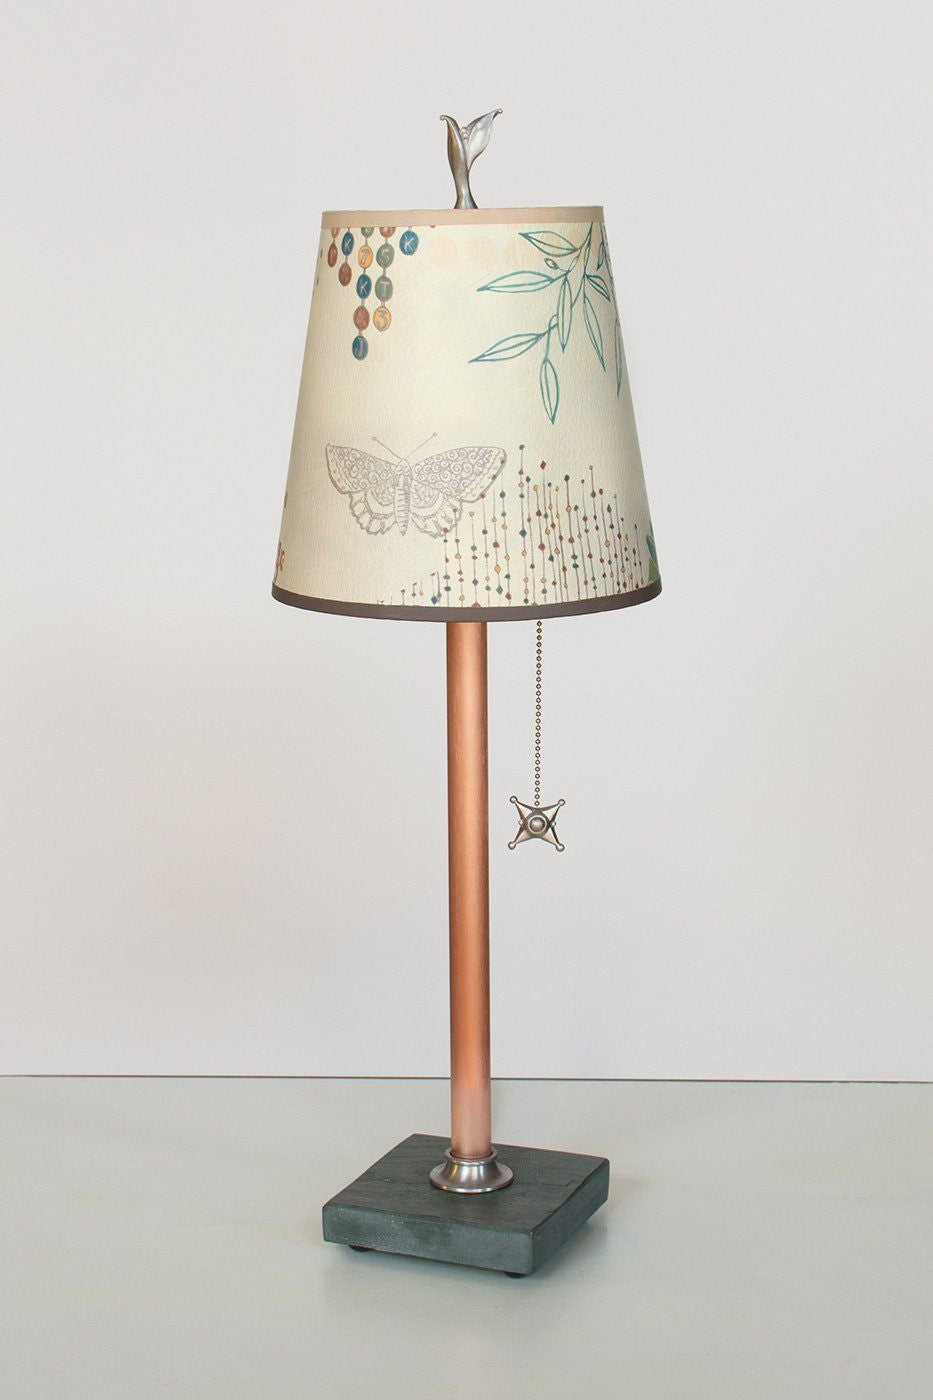 Copper Table Lamp on Vermont Slate Base with Small Drum Shade in Ecru Journey Lit